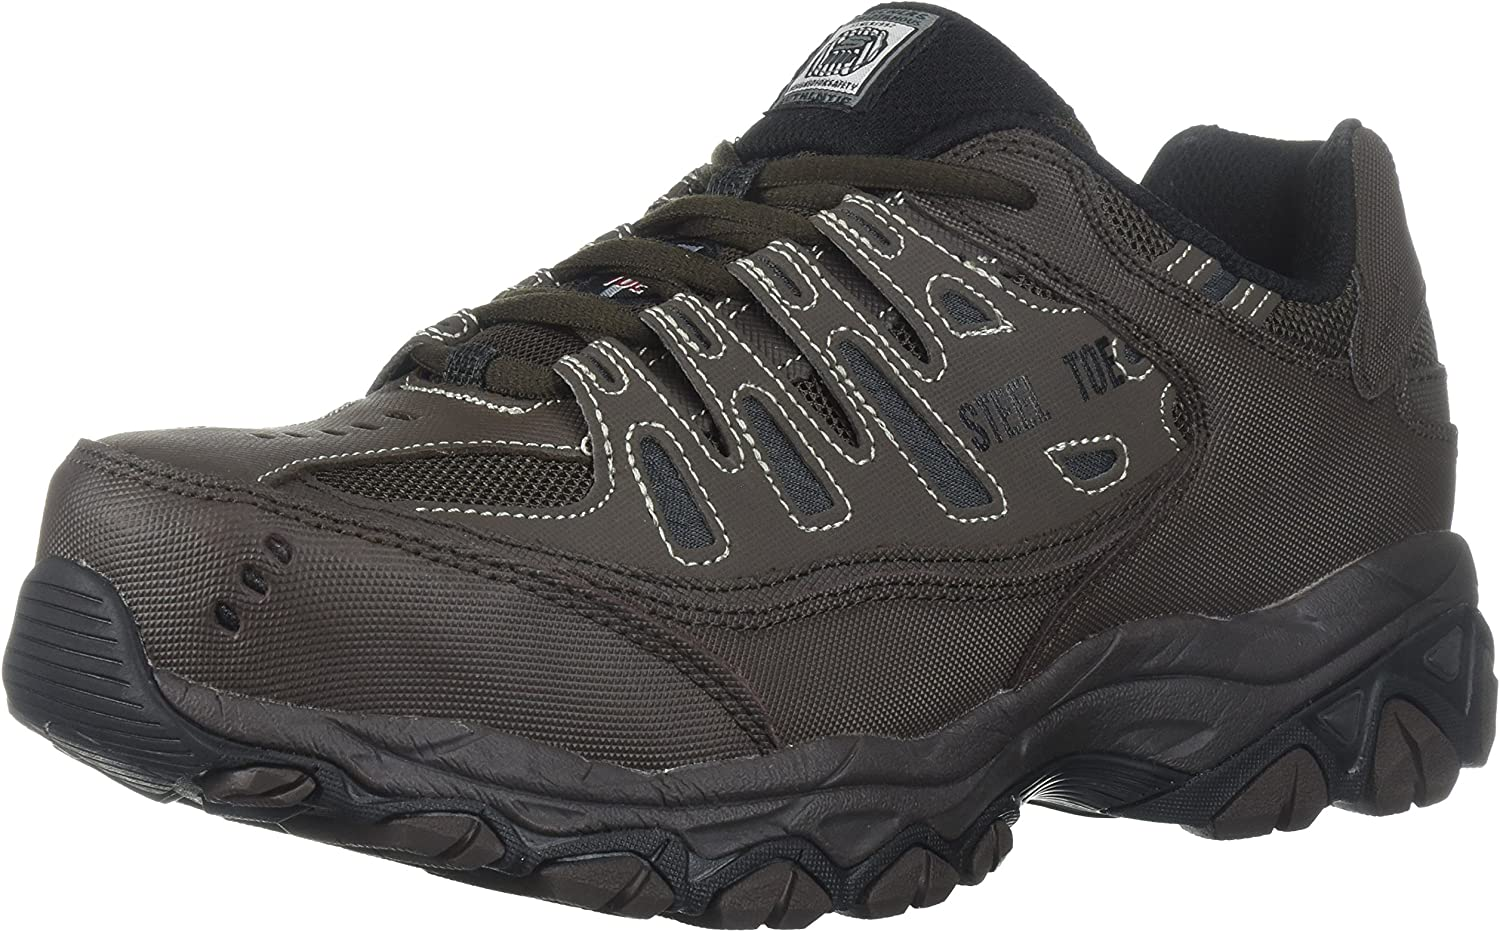 Skechers for Work Men's Cankton-U shoes